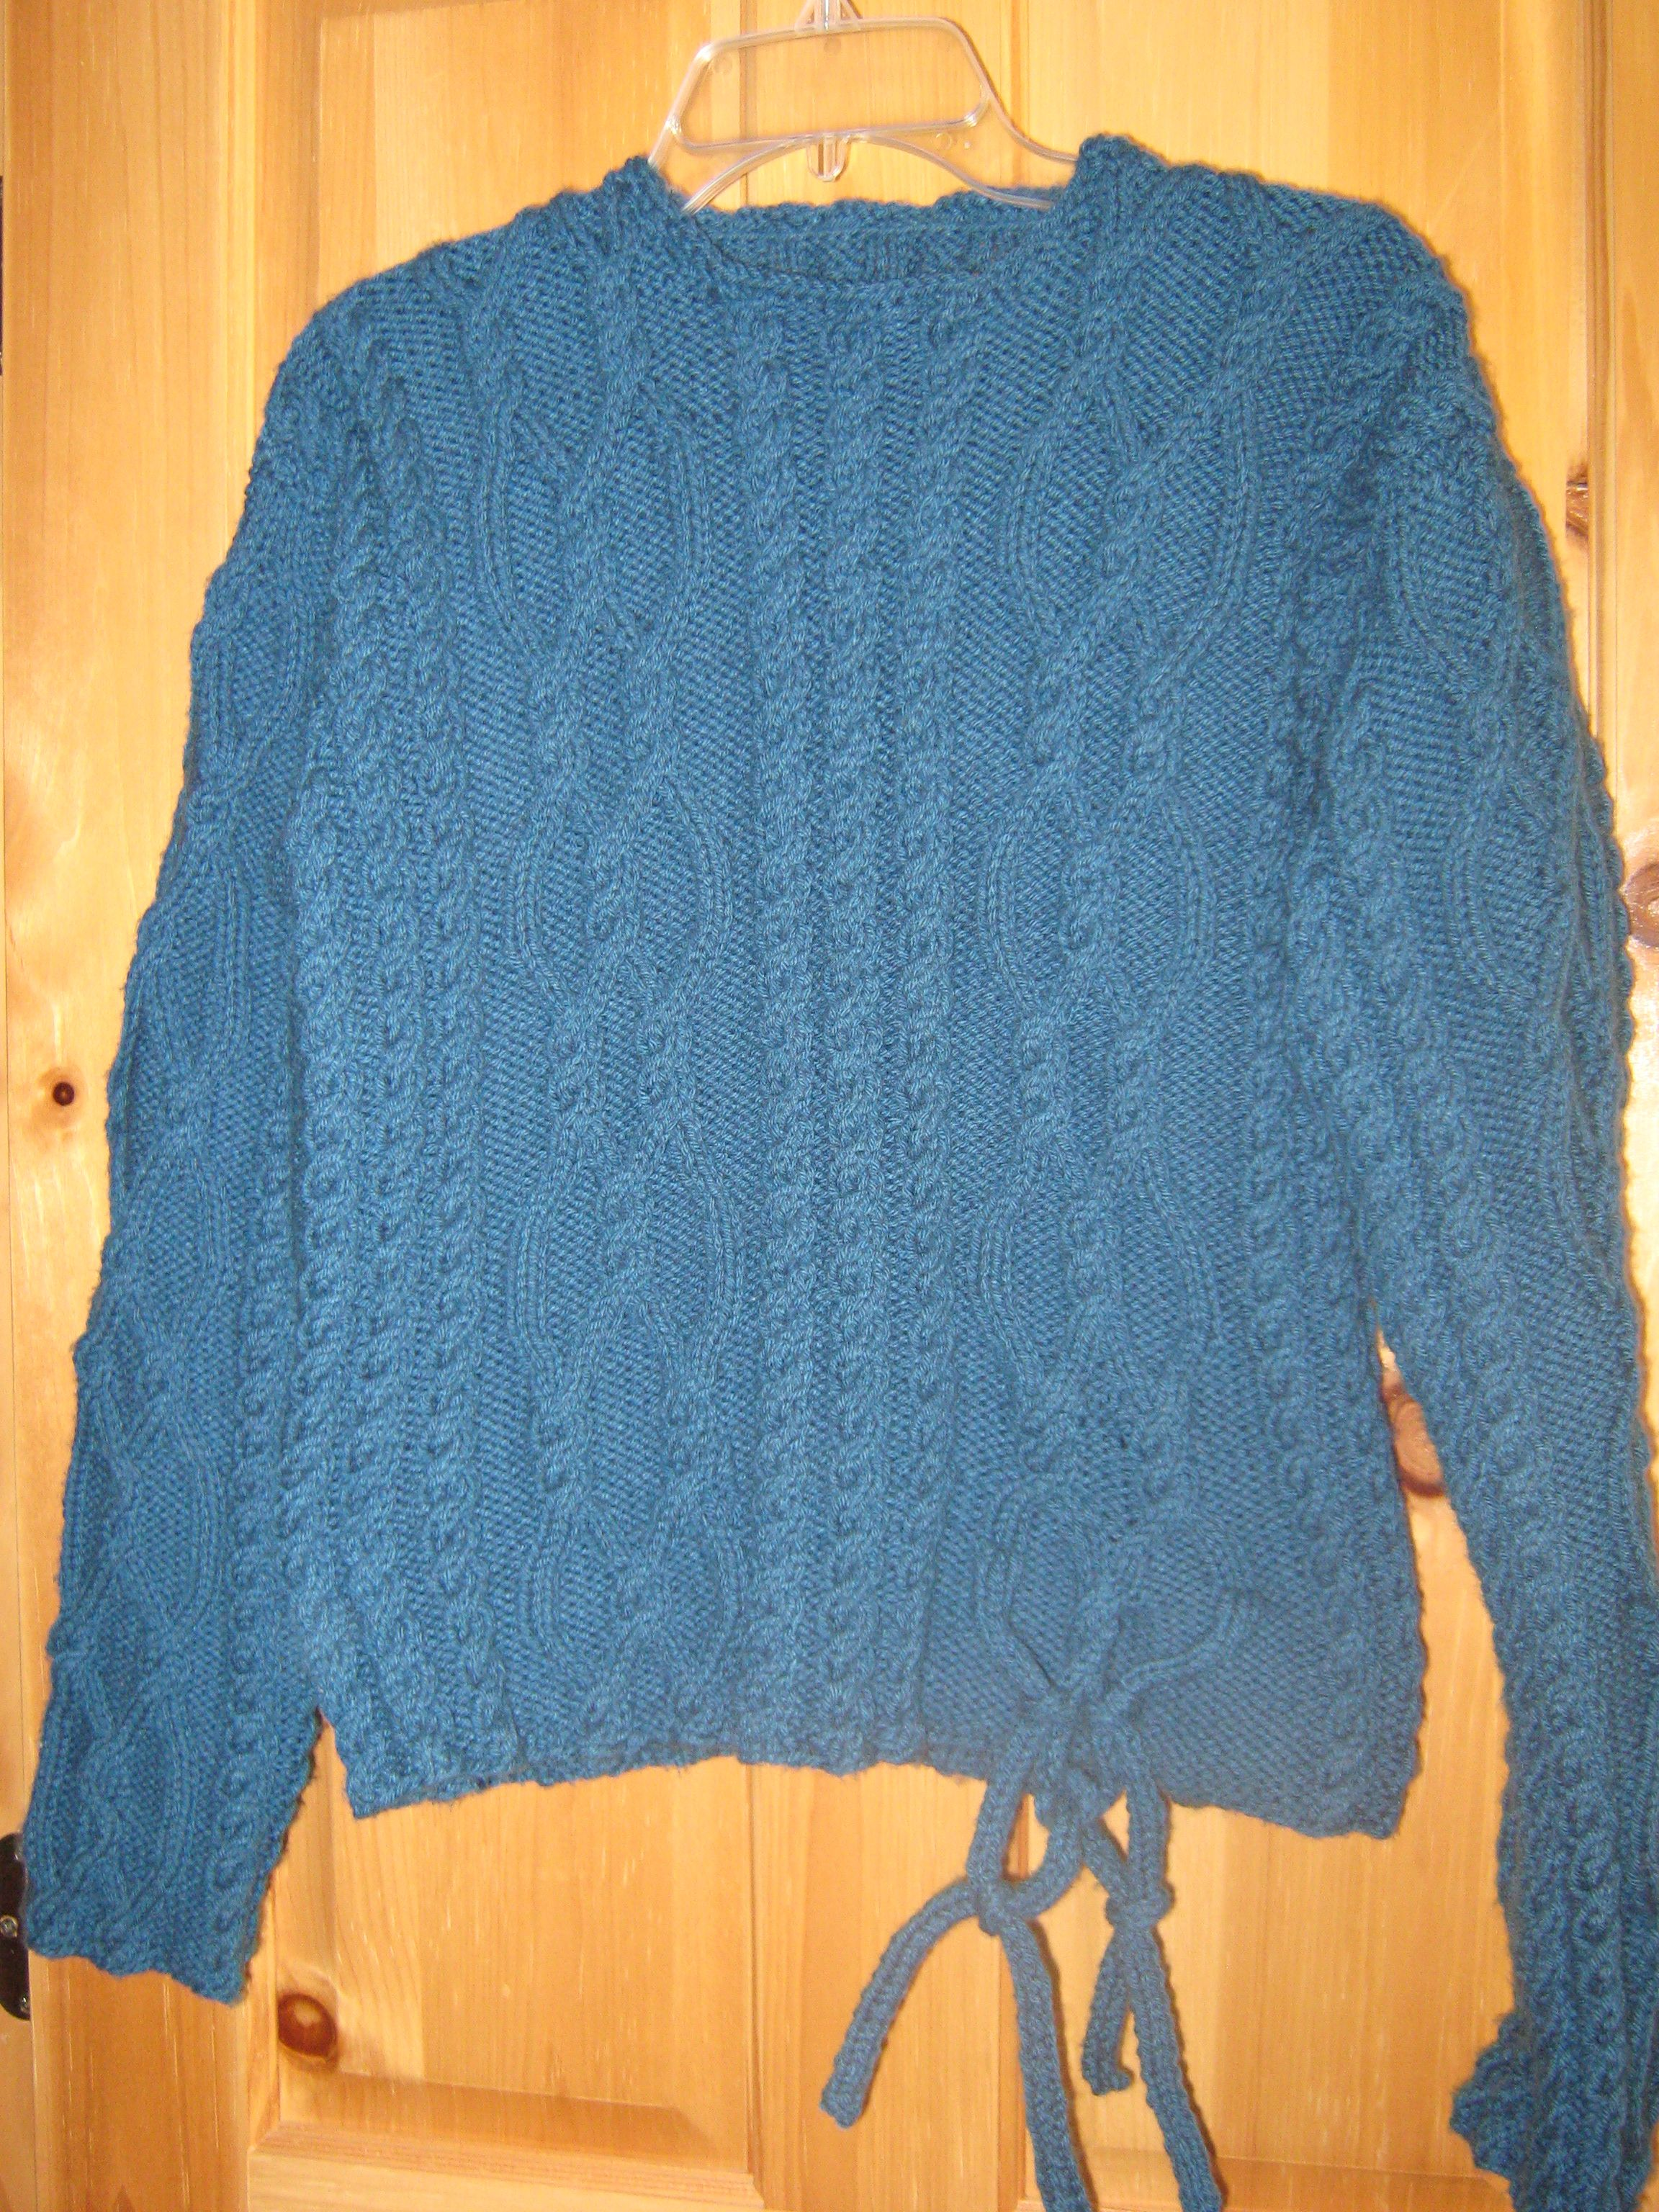 My first knit sweater. Design by Fiona Ellis from her book Inspired ...